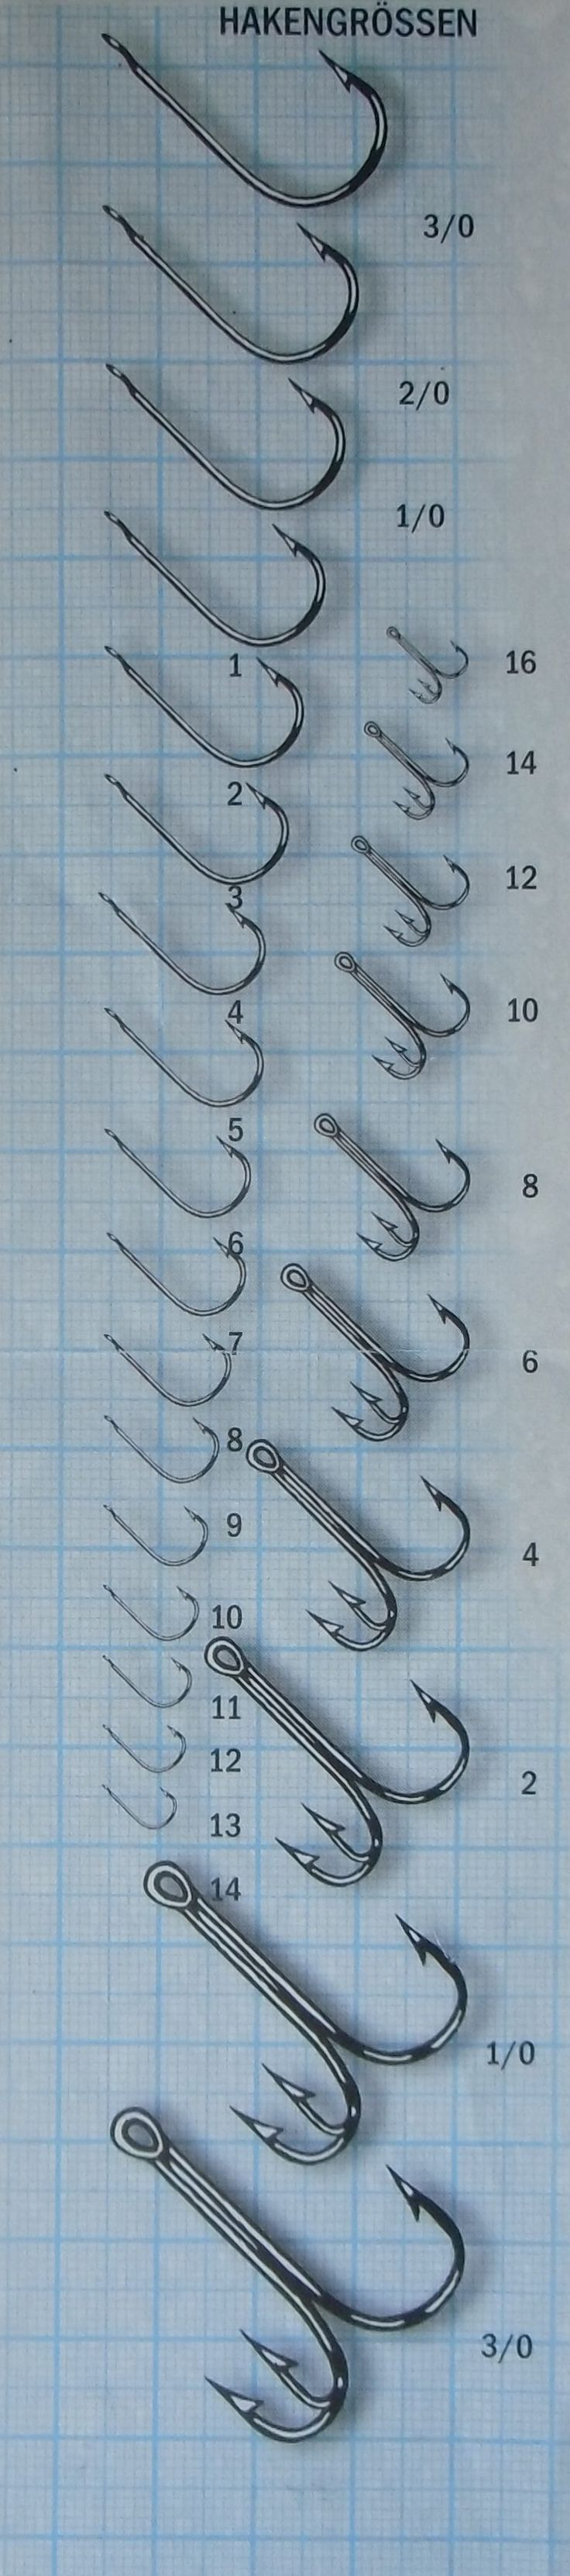 Quick guide to look at when sizing hooks or wondering what size hook to use. www.kmdainc.com